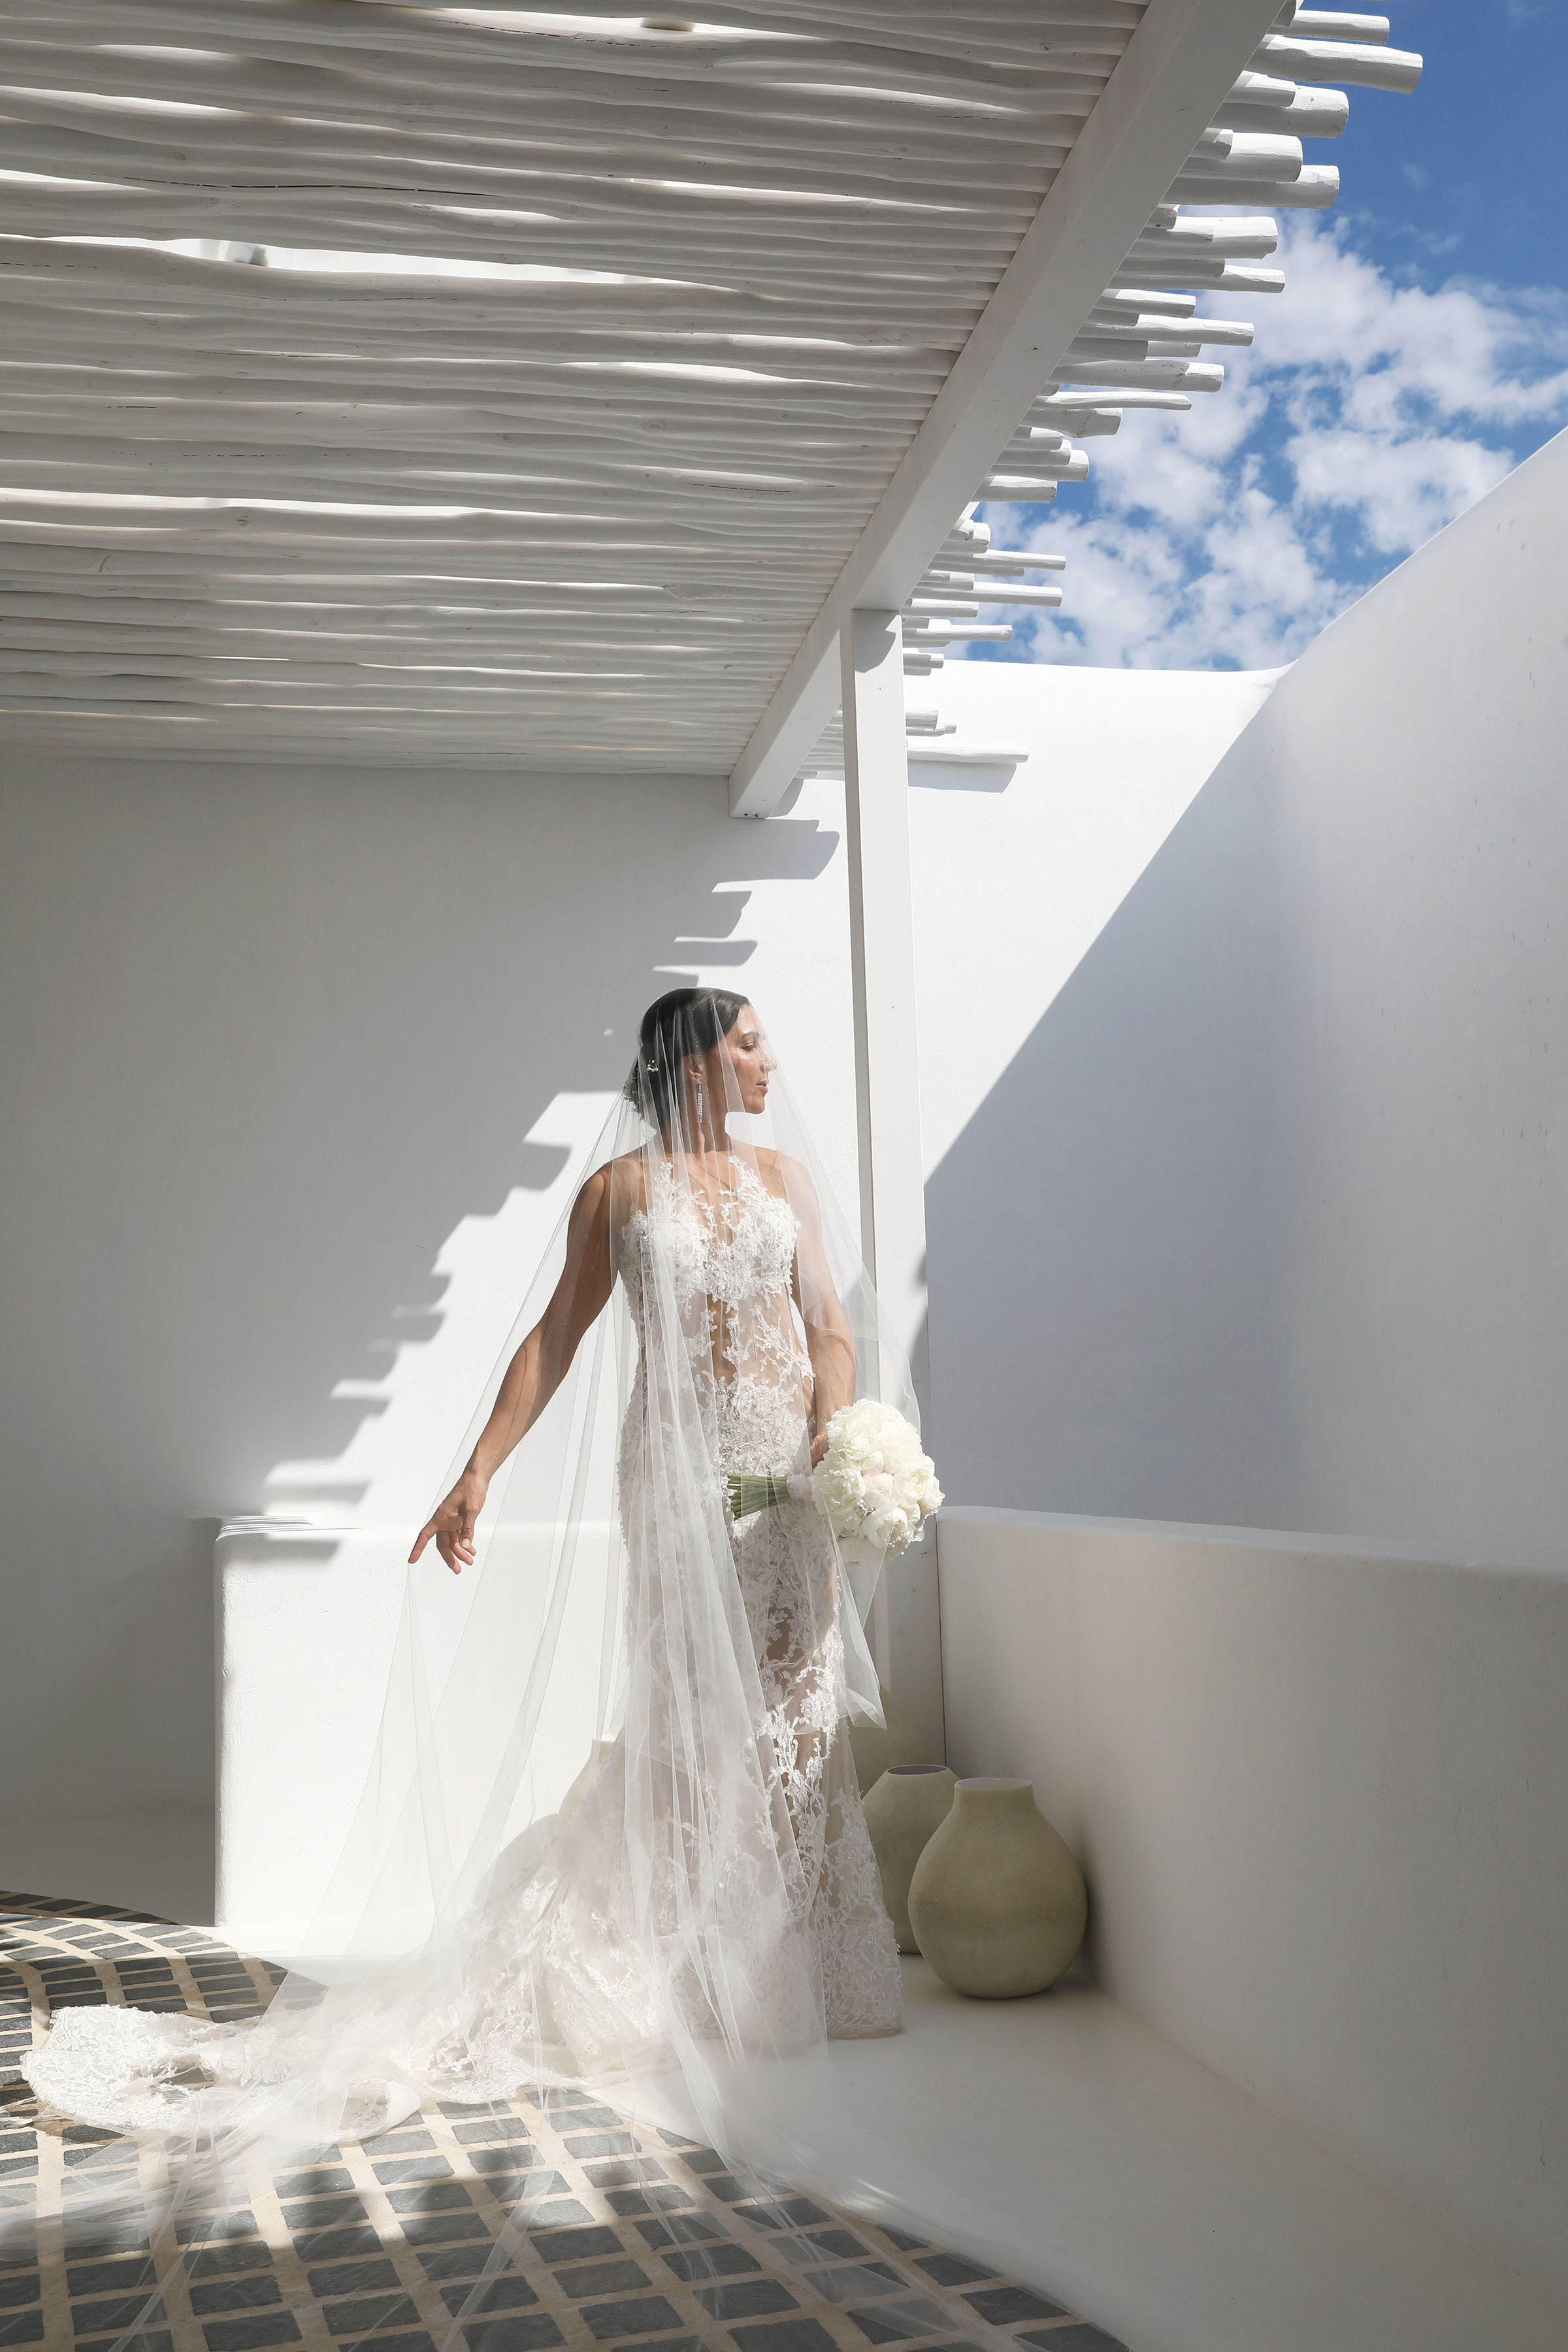 Bride posing against white outdoors - photo by Kenny Kim Photography